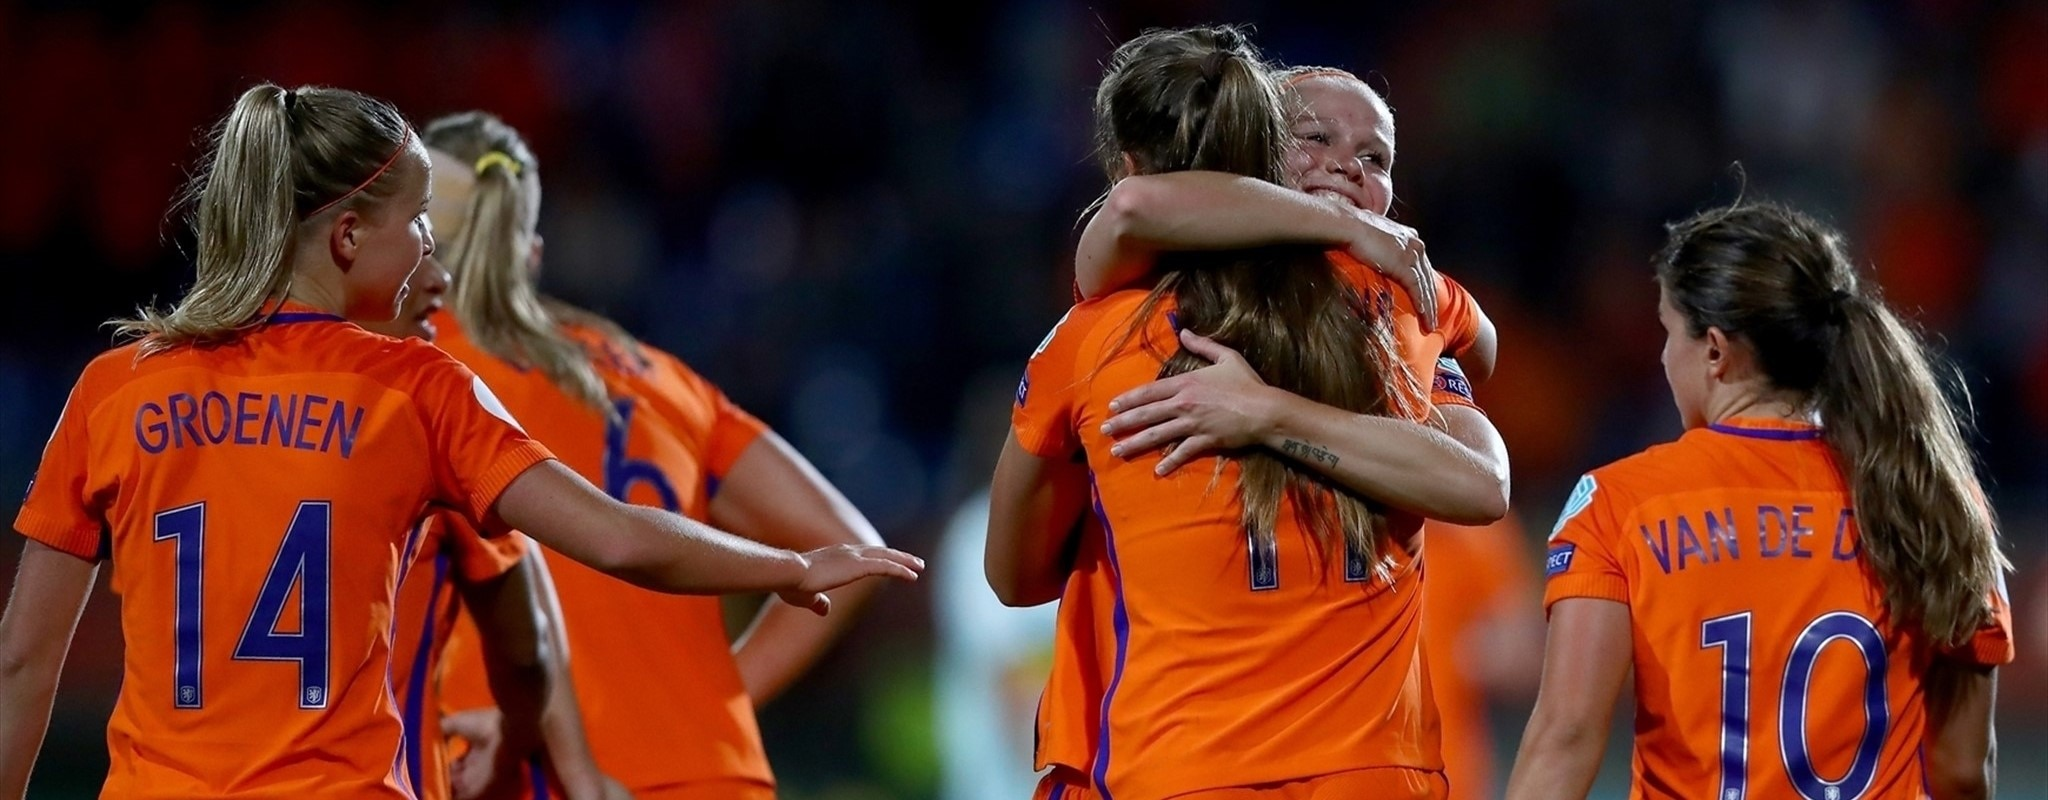 Netherlands end Belgium hopes to go through as group winners